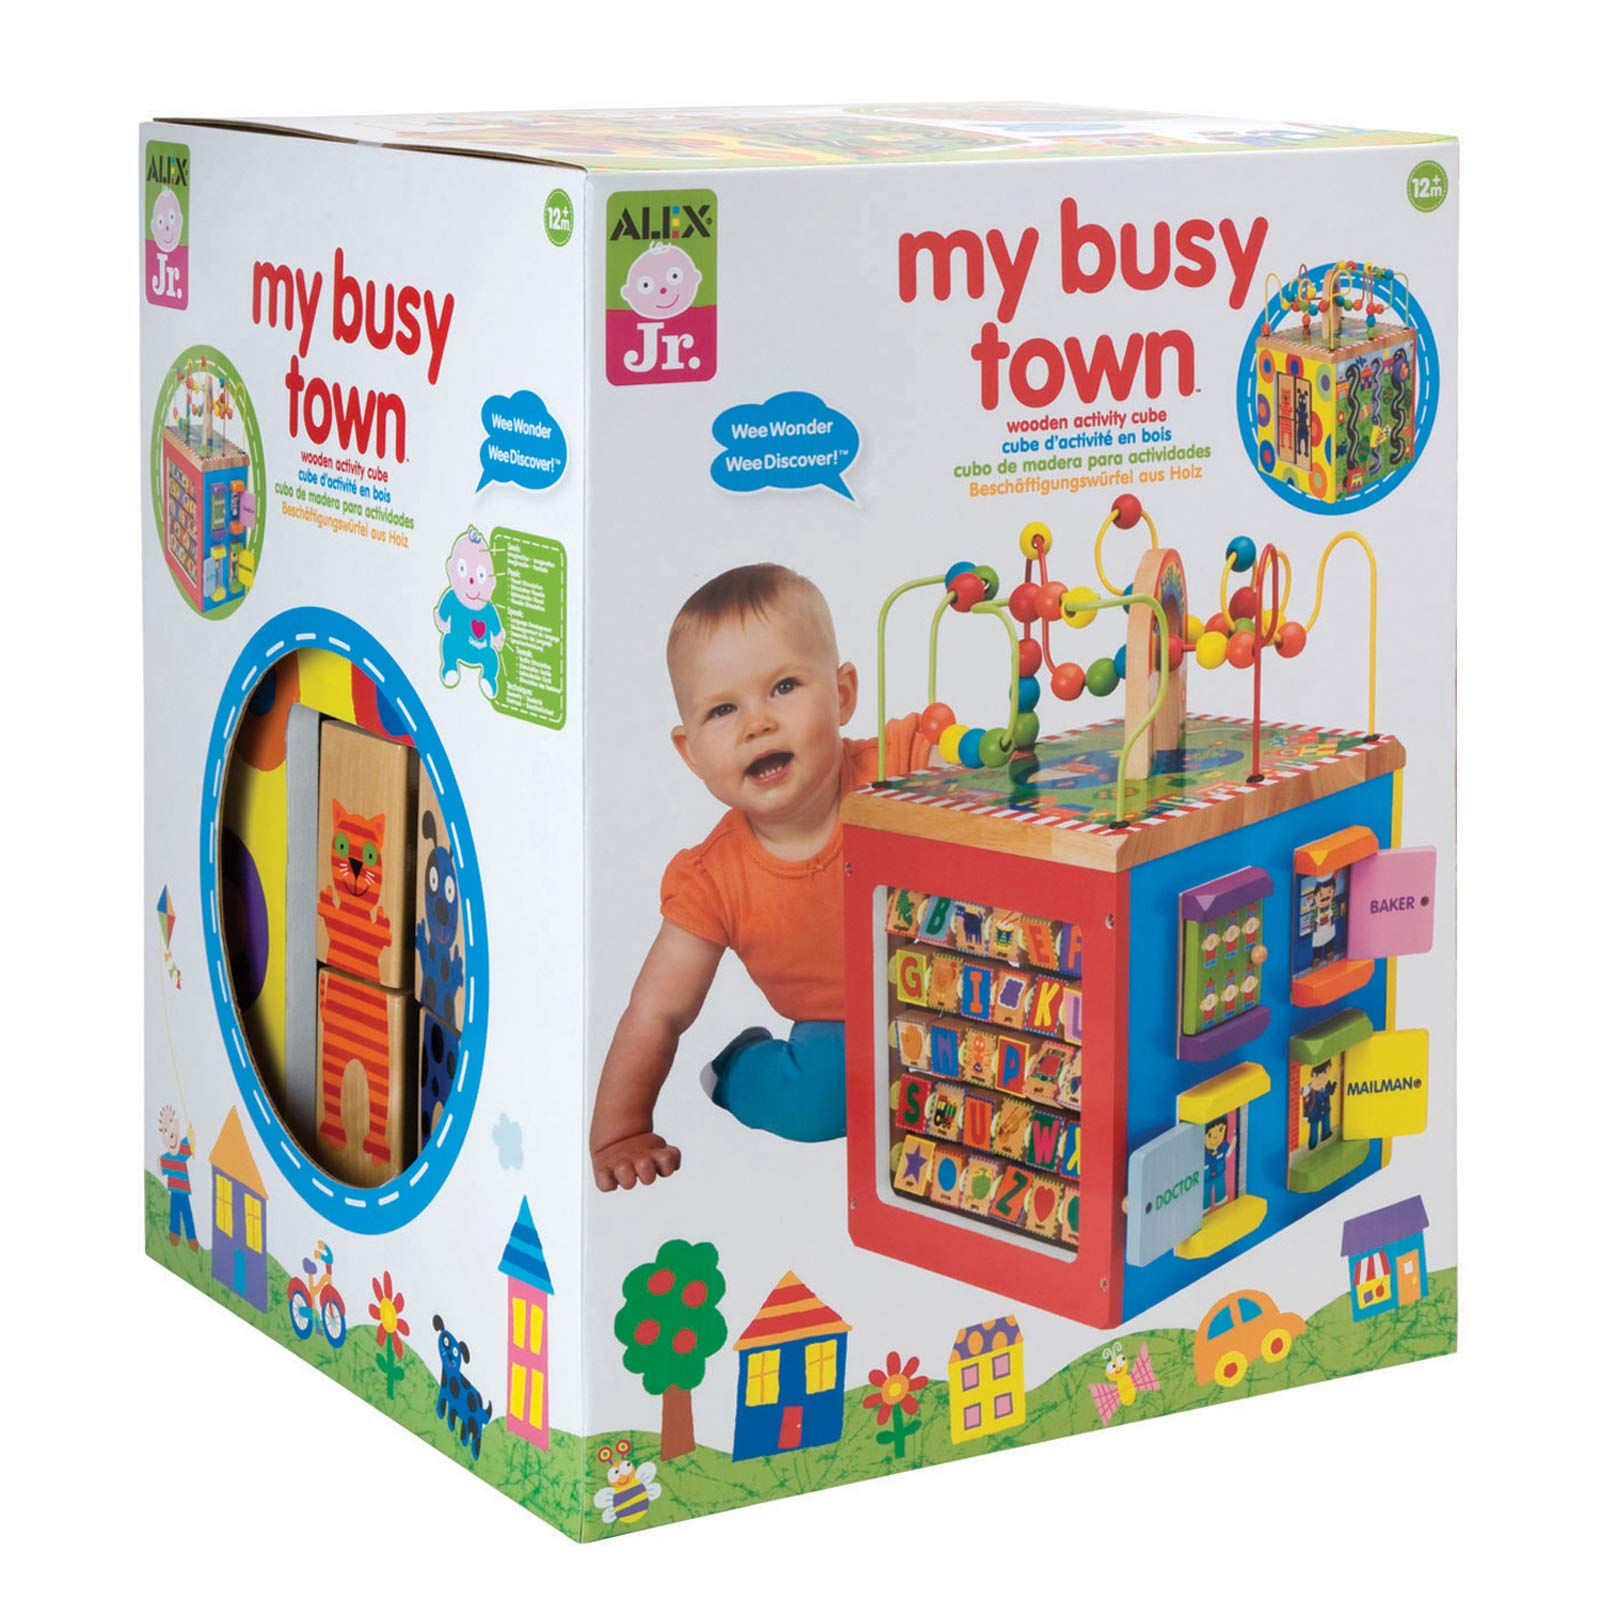 ALEX Discover My Busy Town Wooden Activity Cube by ALEX Toys (Image #1)